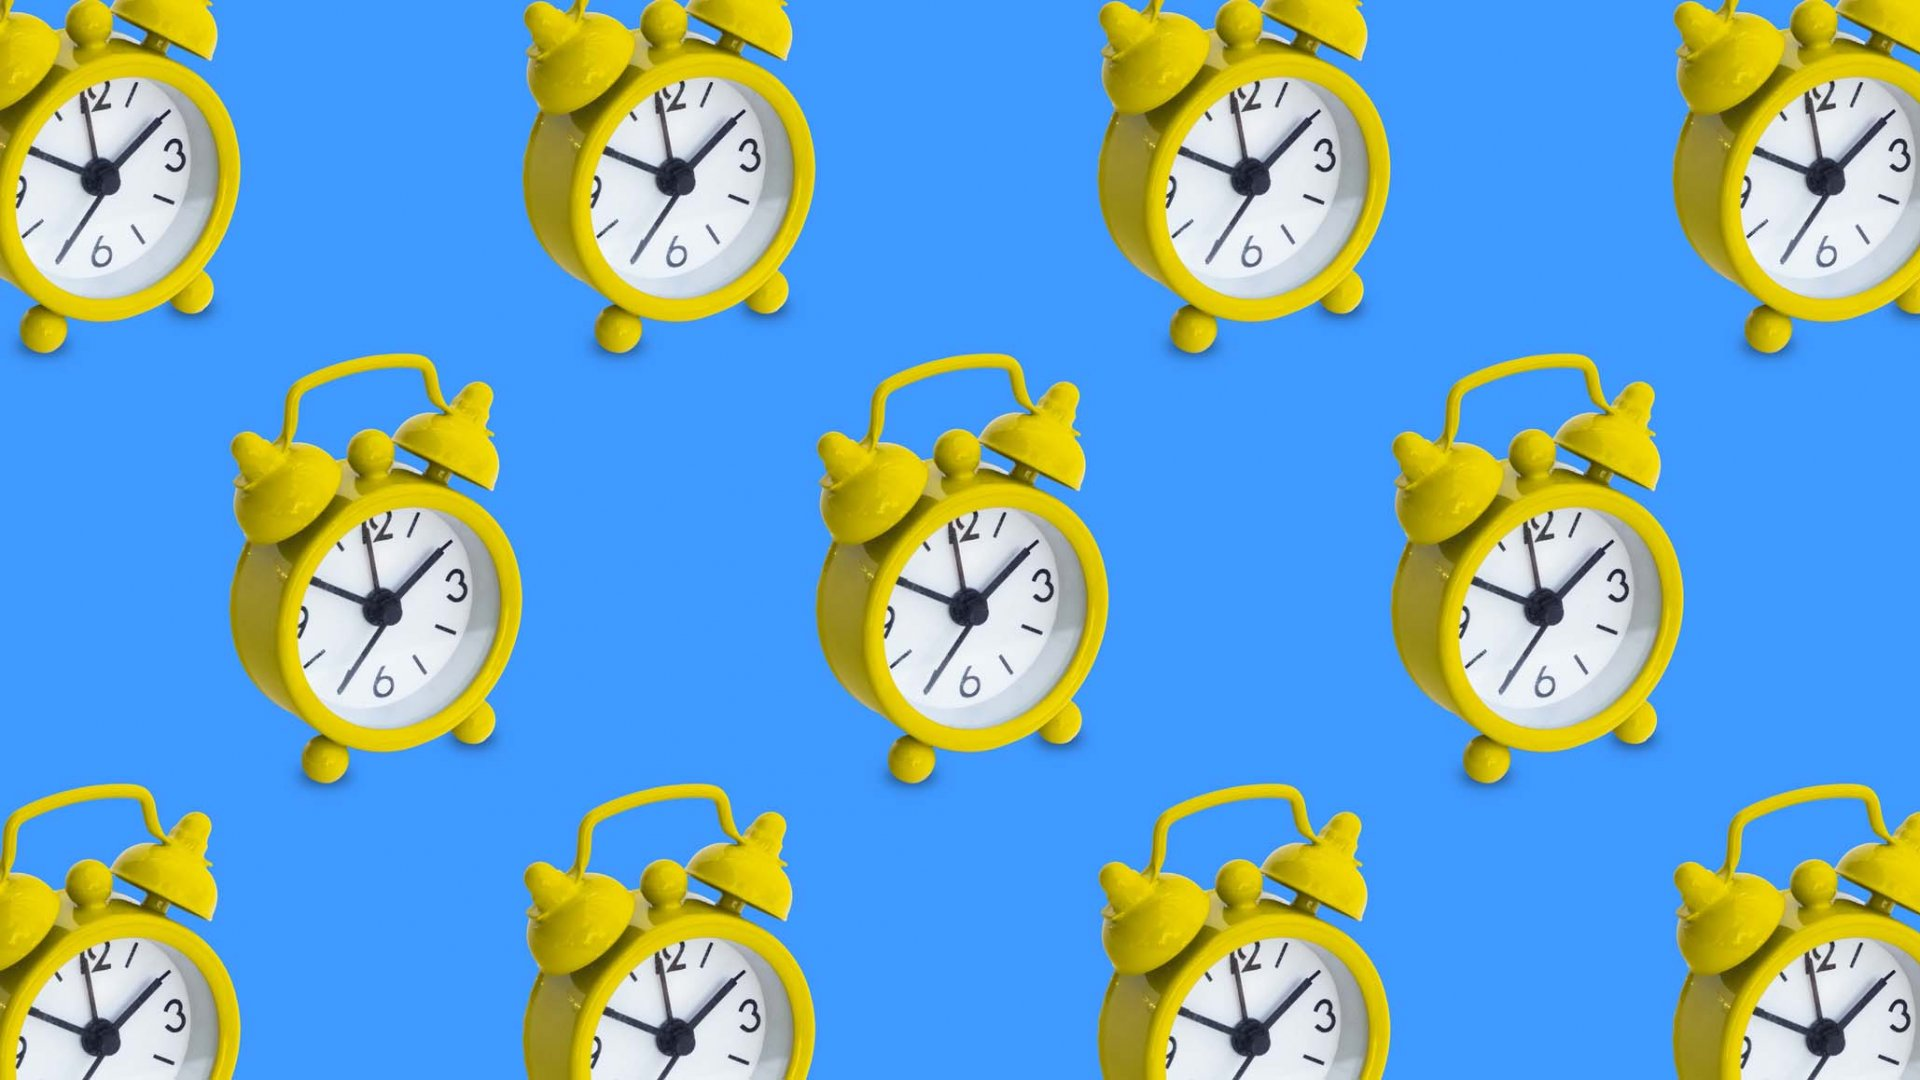 How to Best Take Advantage of Any Extra Time